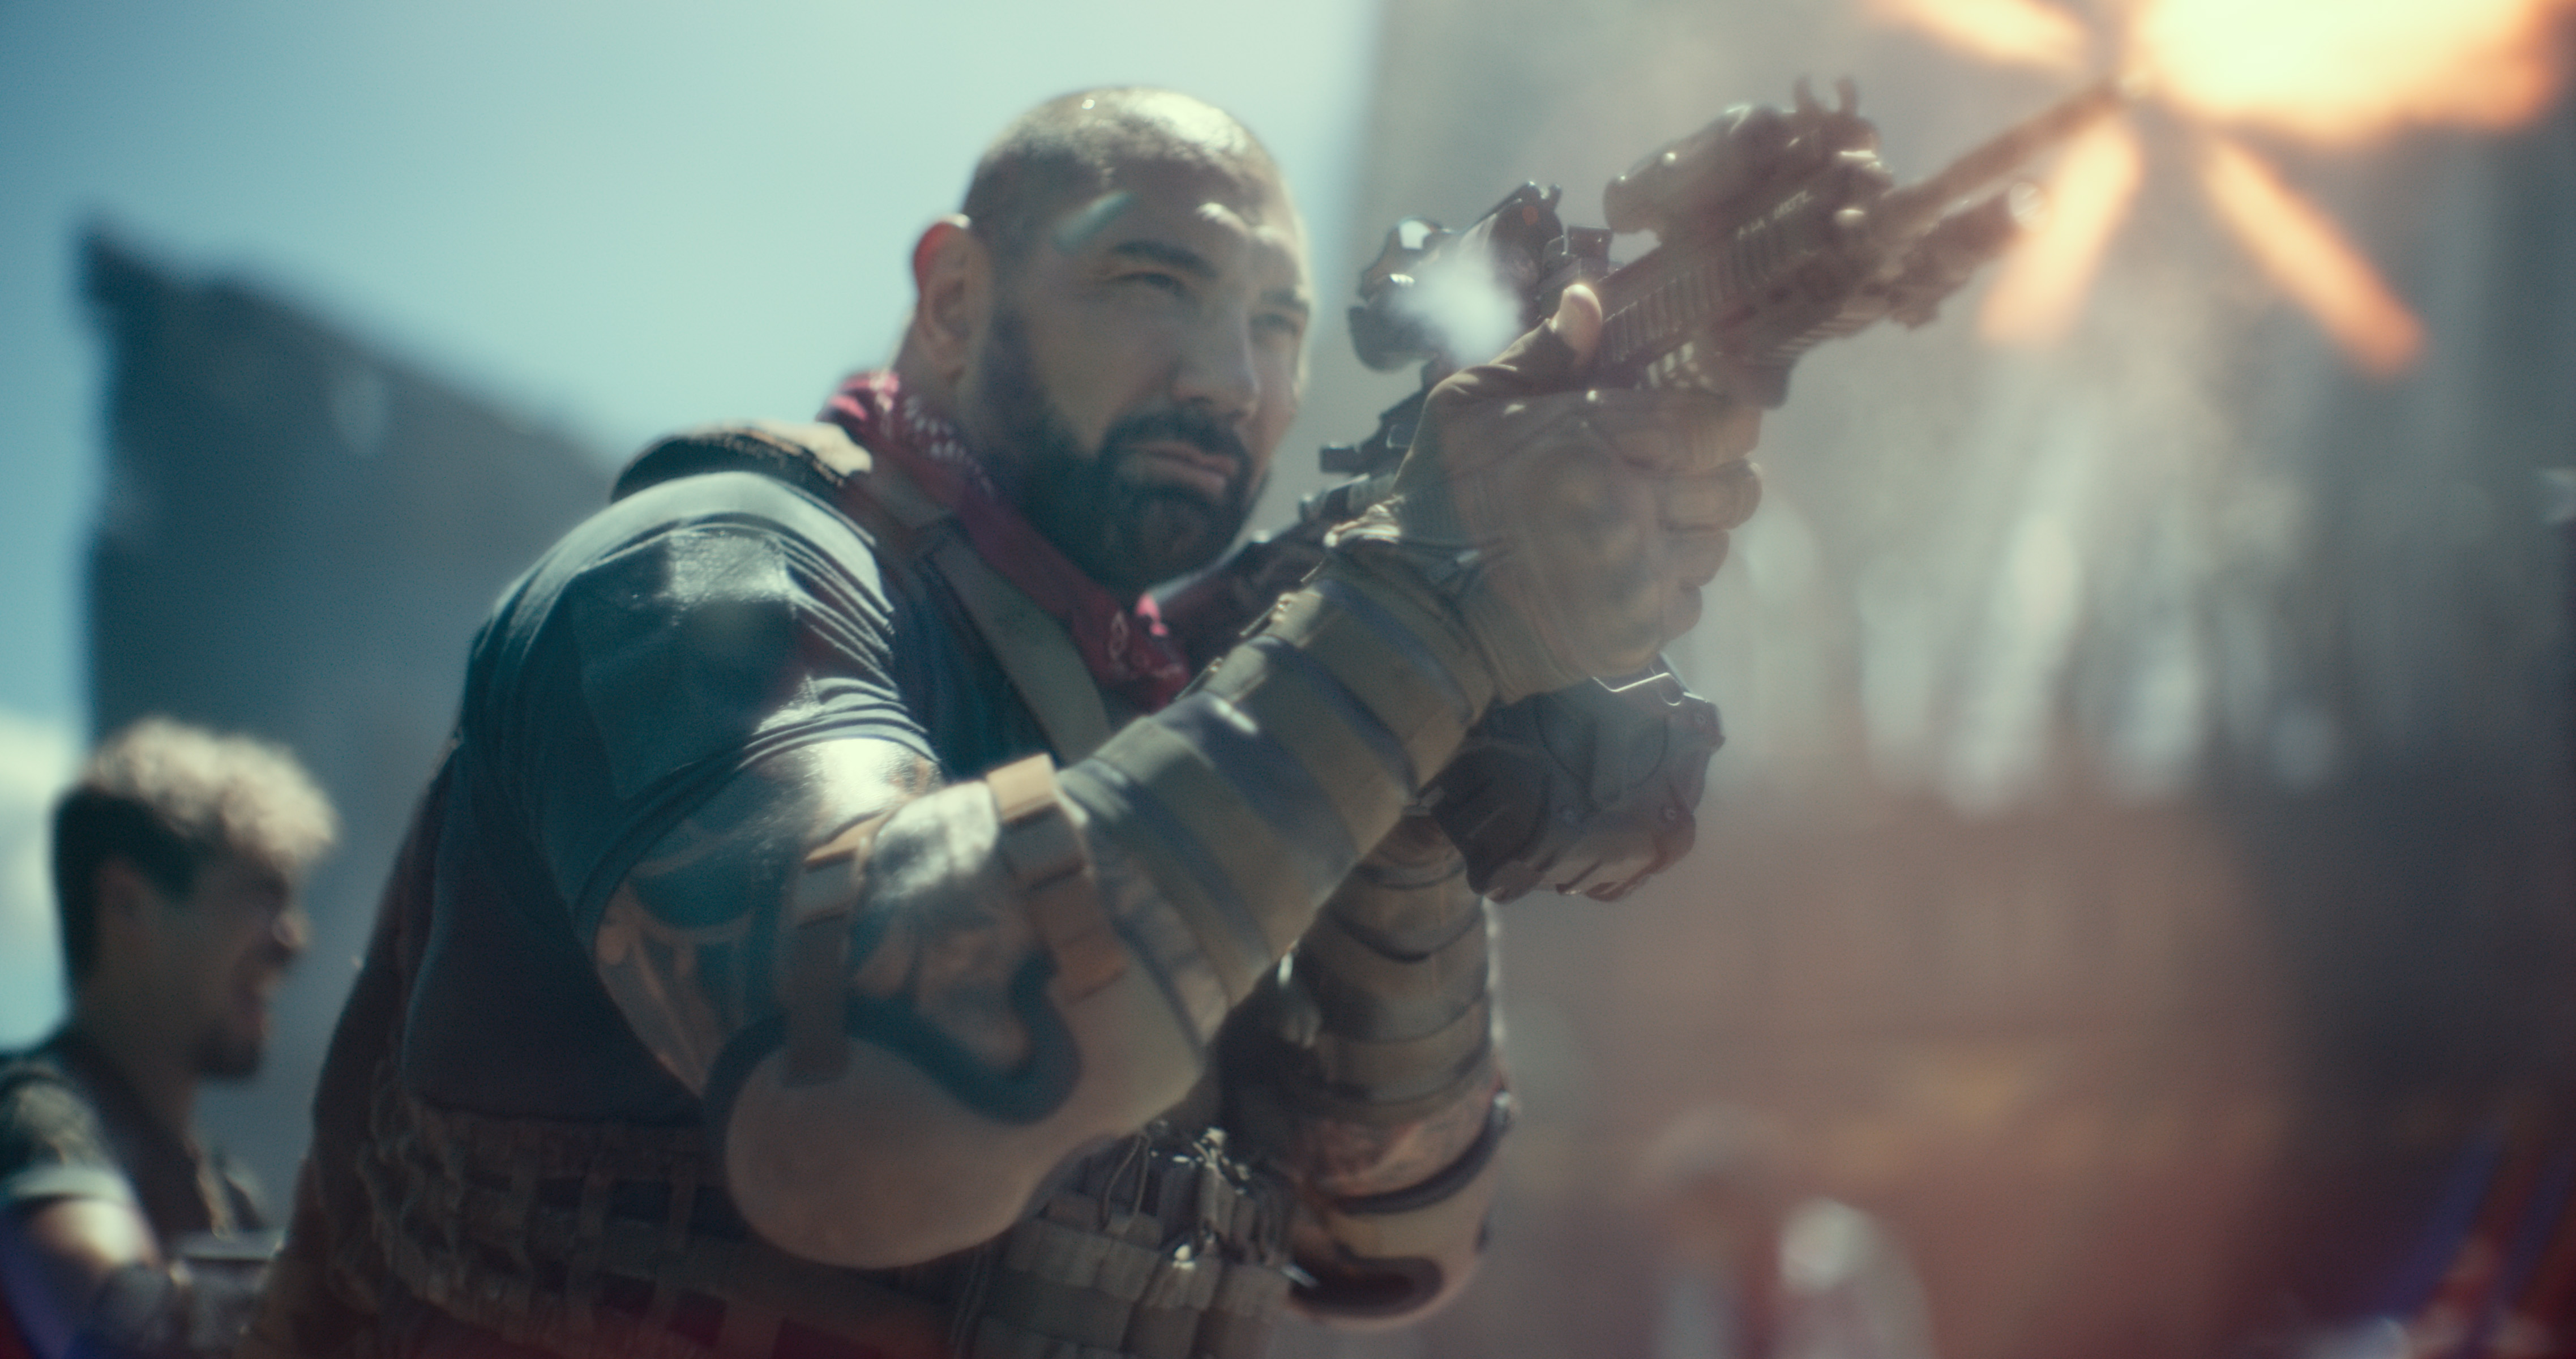 Dave Bautista Reveals Why He Really Wanted To Work With Zack Snyder